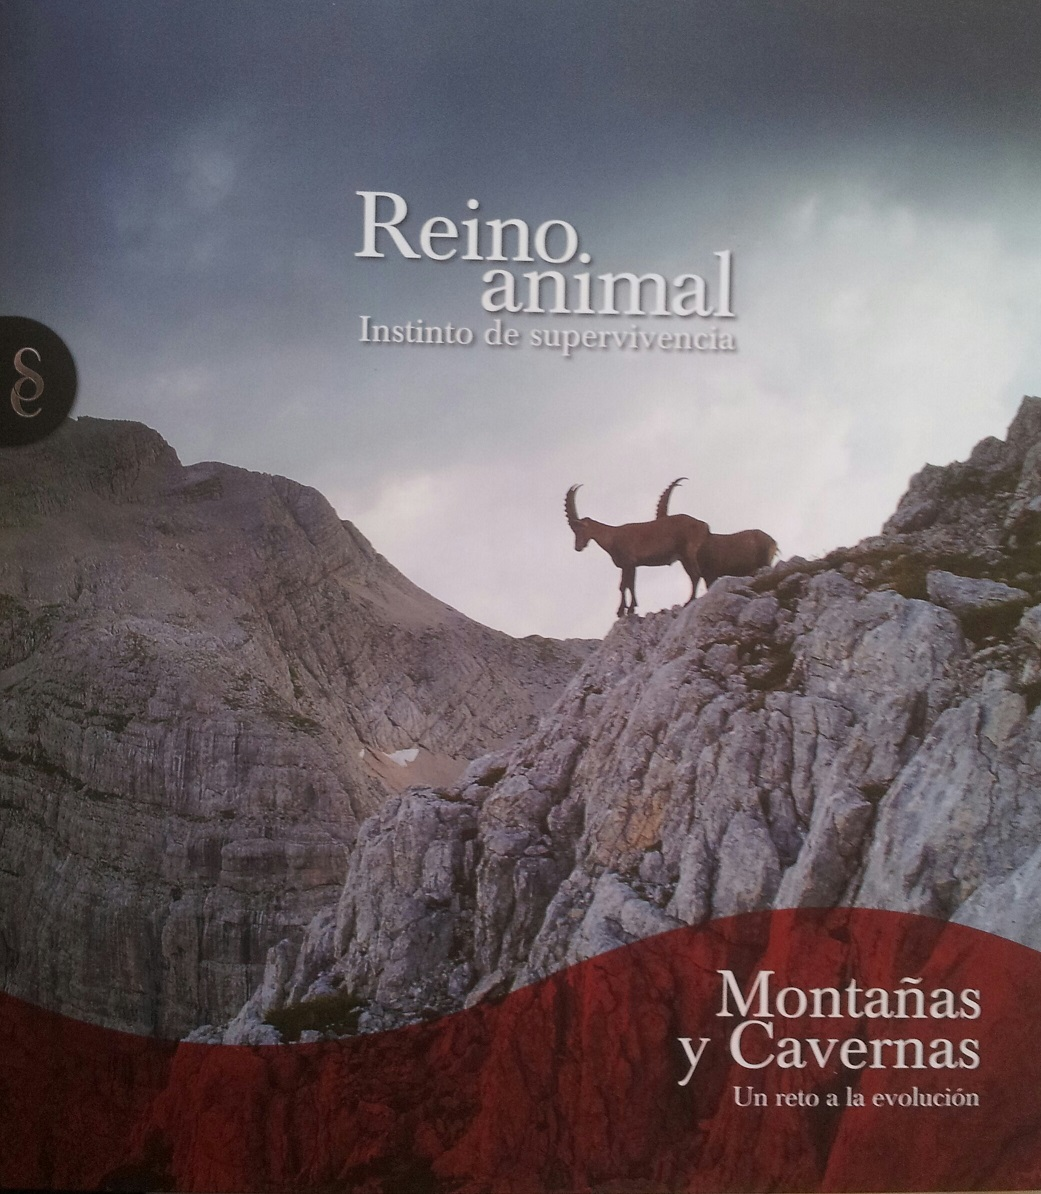 Reino animal: Instinto de supervivencia, 8